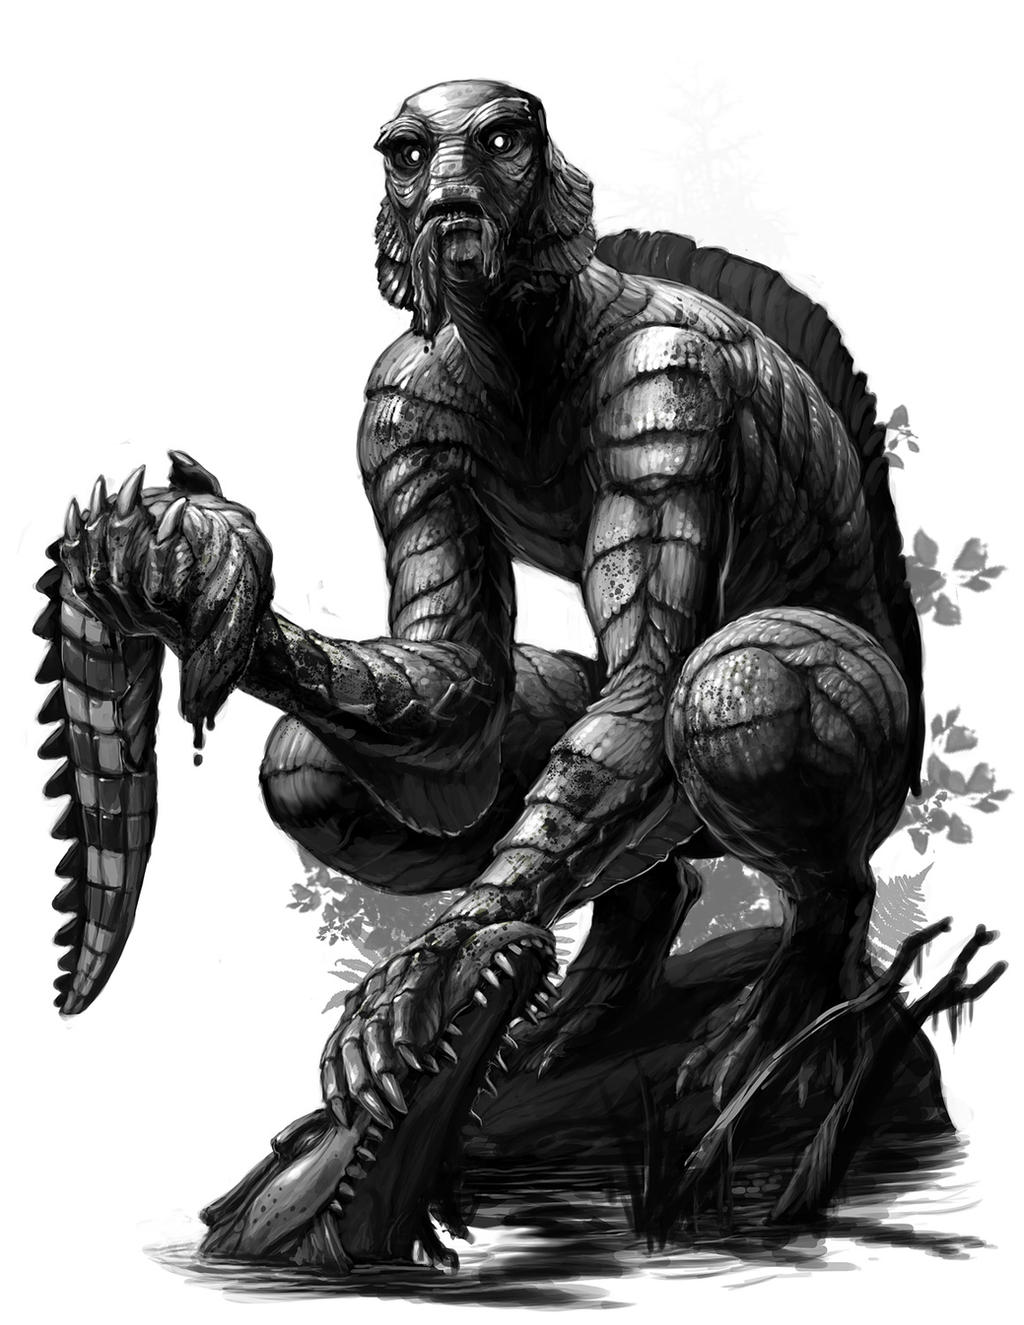 Creature of the Black Lagoon 2015 by Onikaizer on DeviantArt